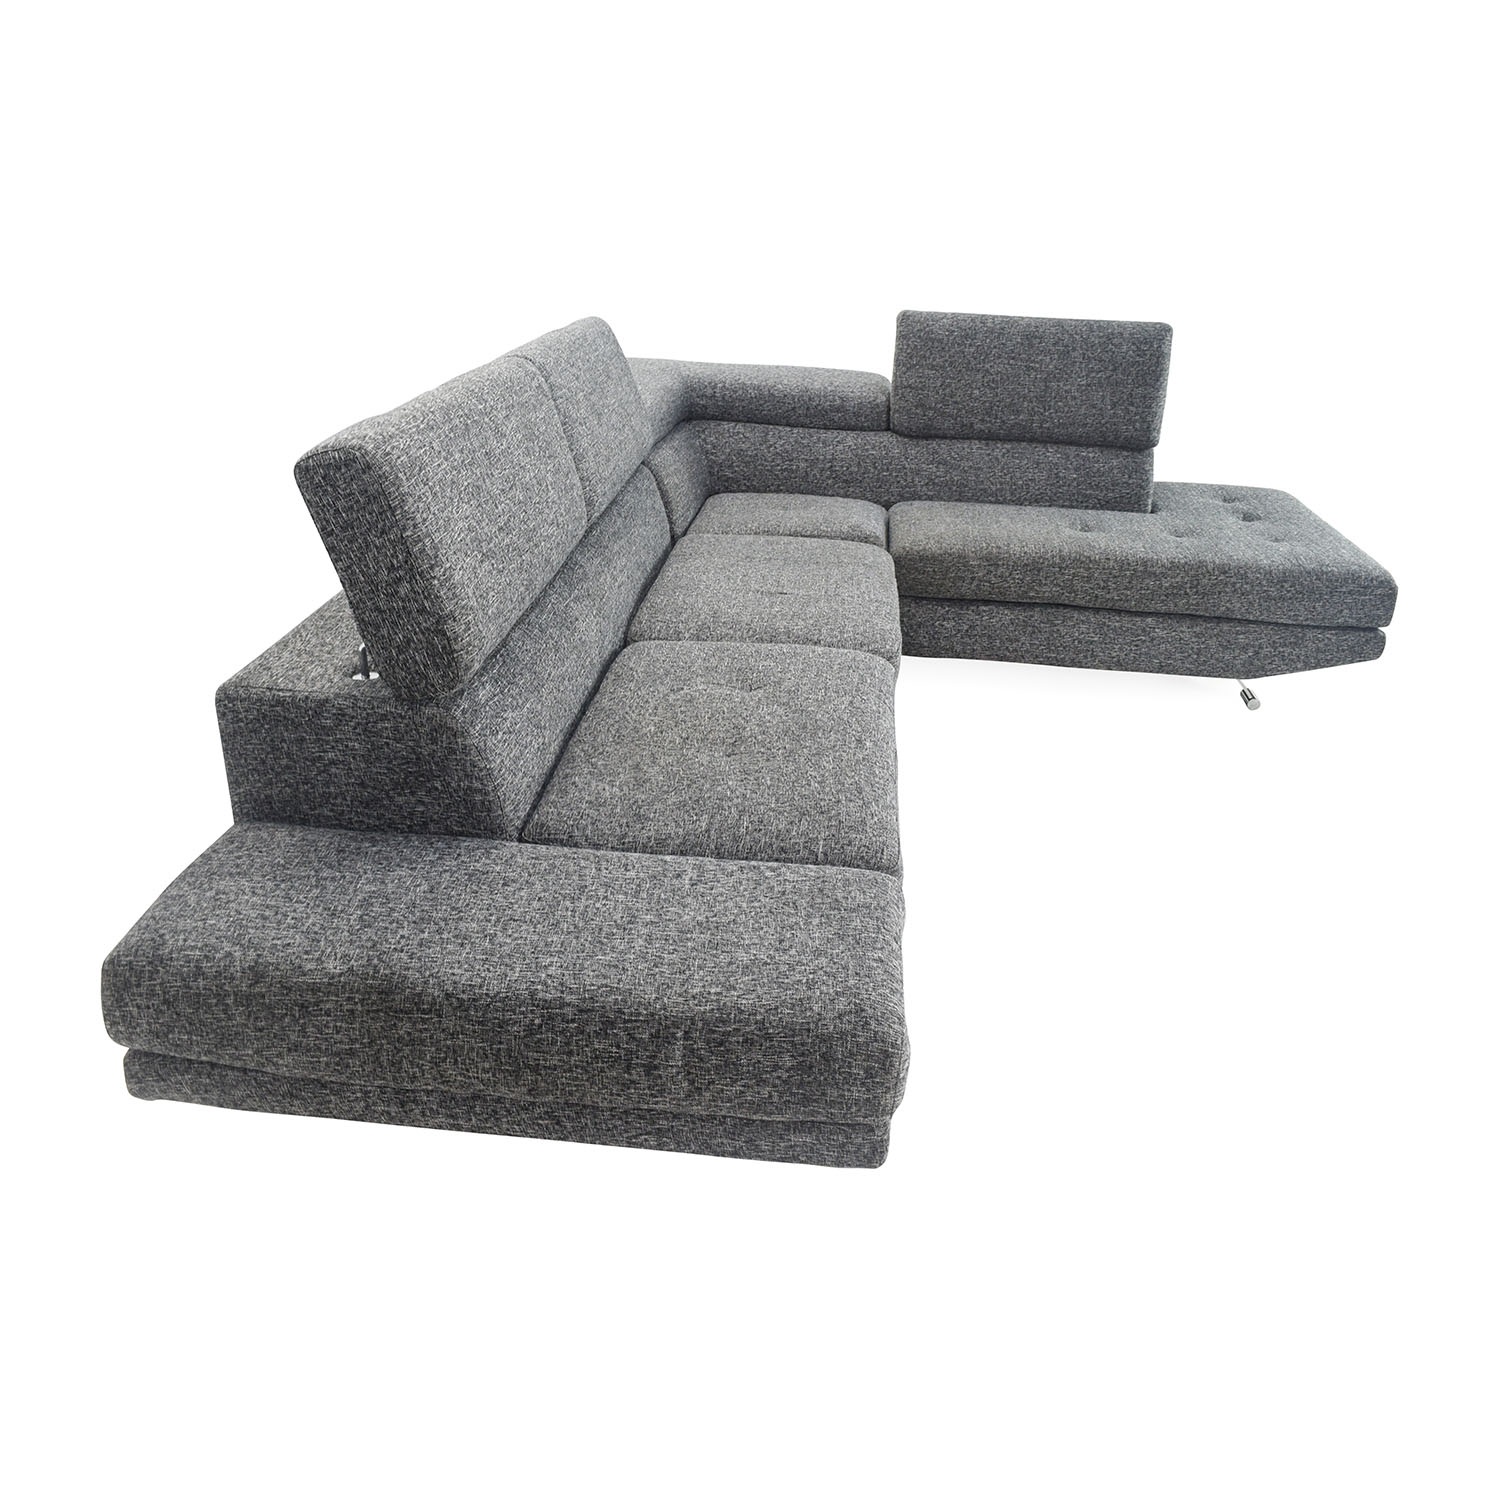 Unknown brand Gray Sectional Entertainment Couch price